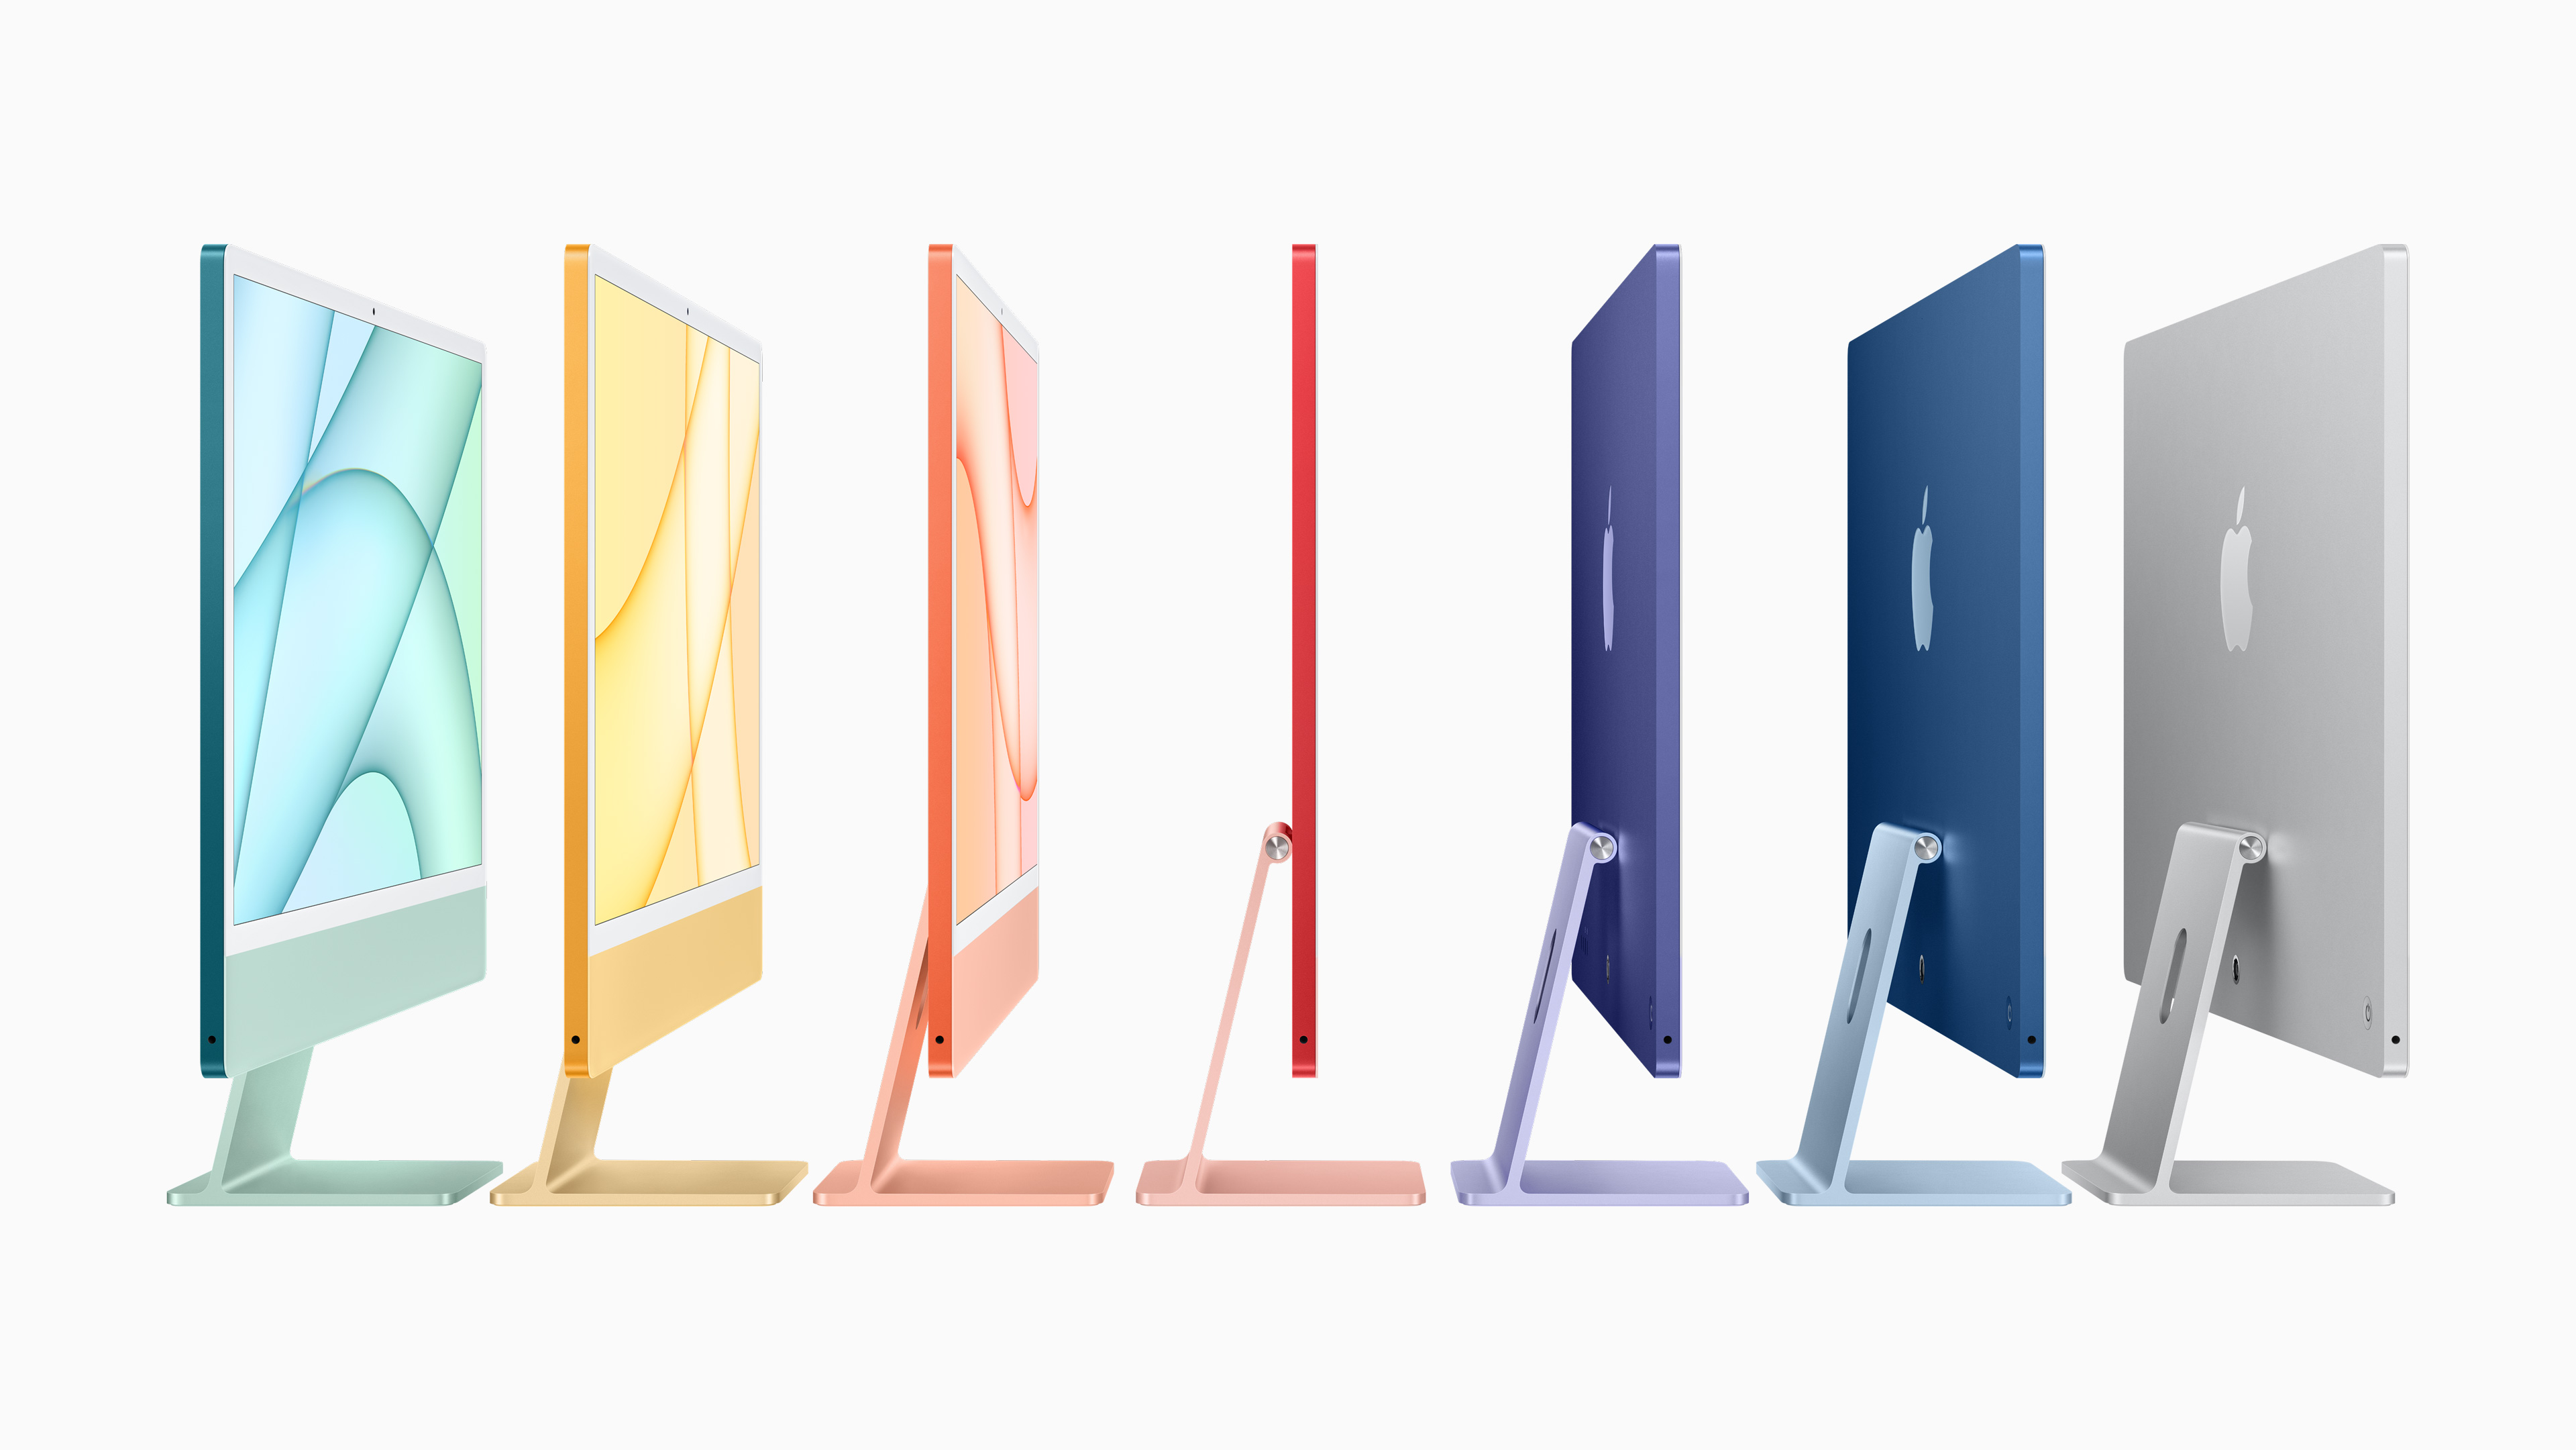 Apple introduces colorful new iMac – TechCrunch